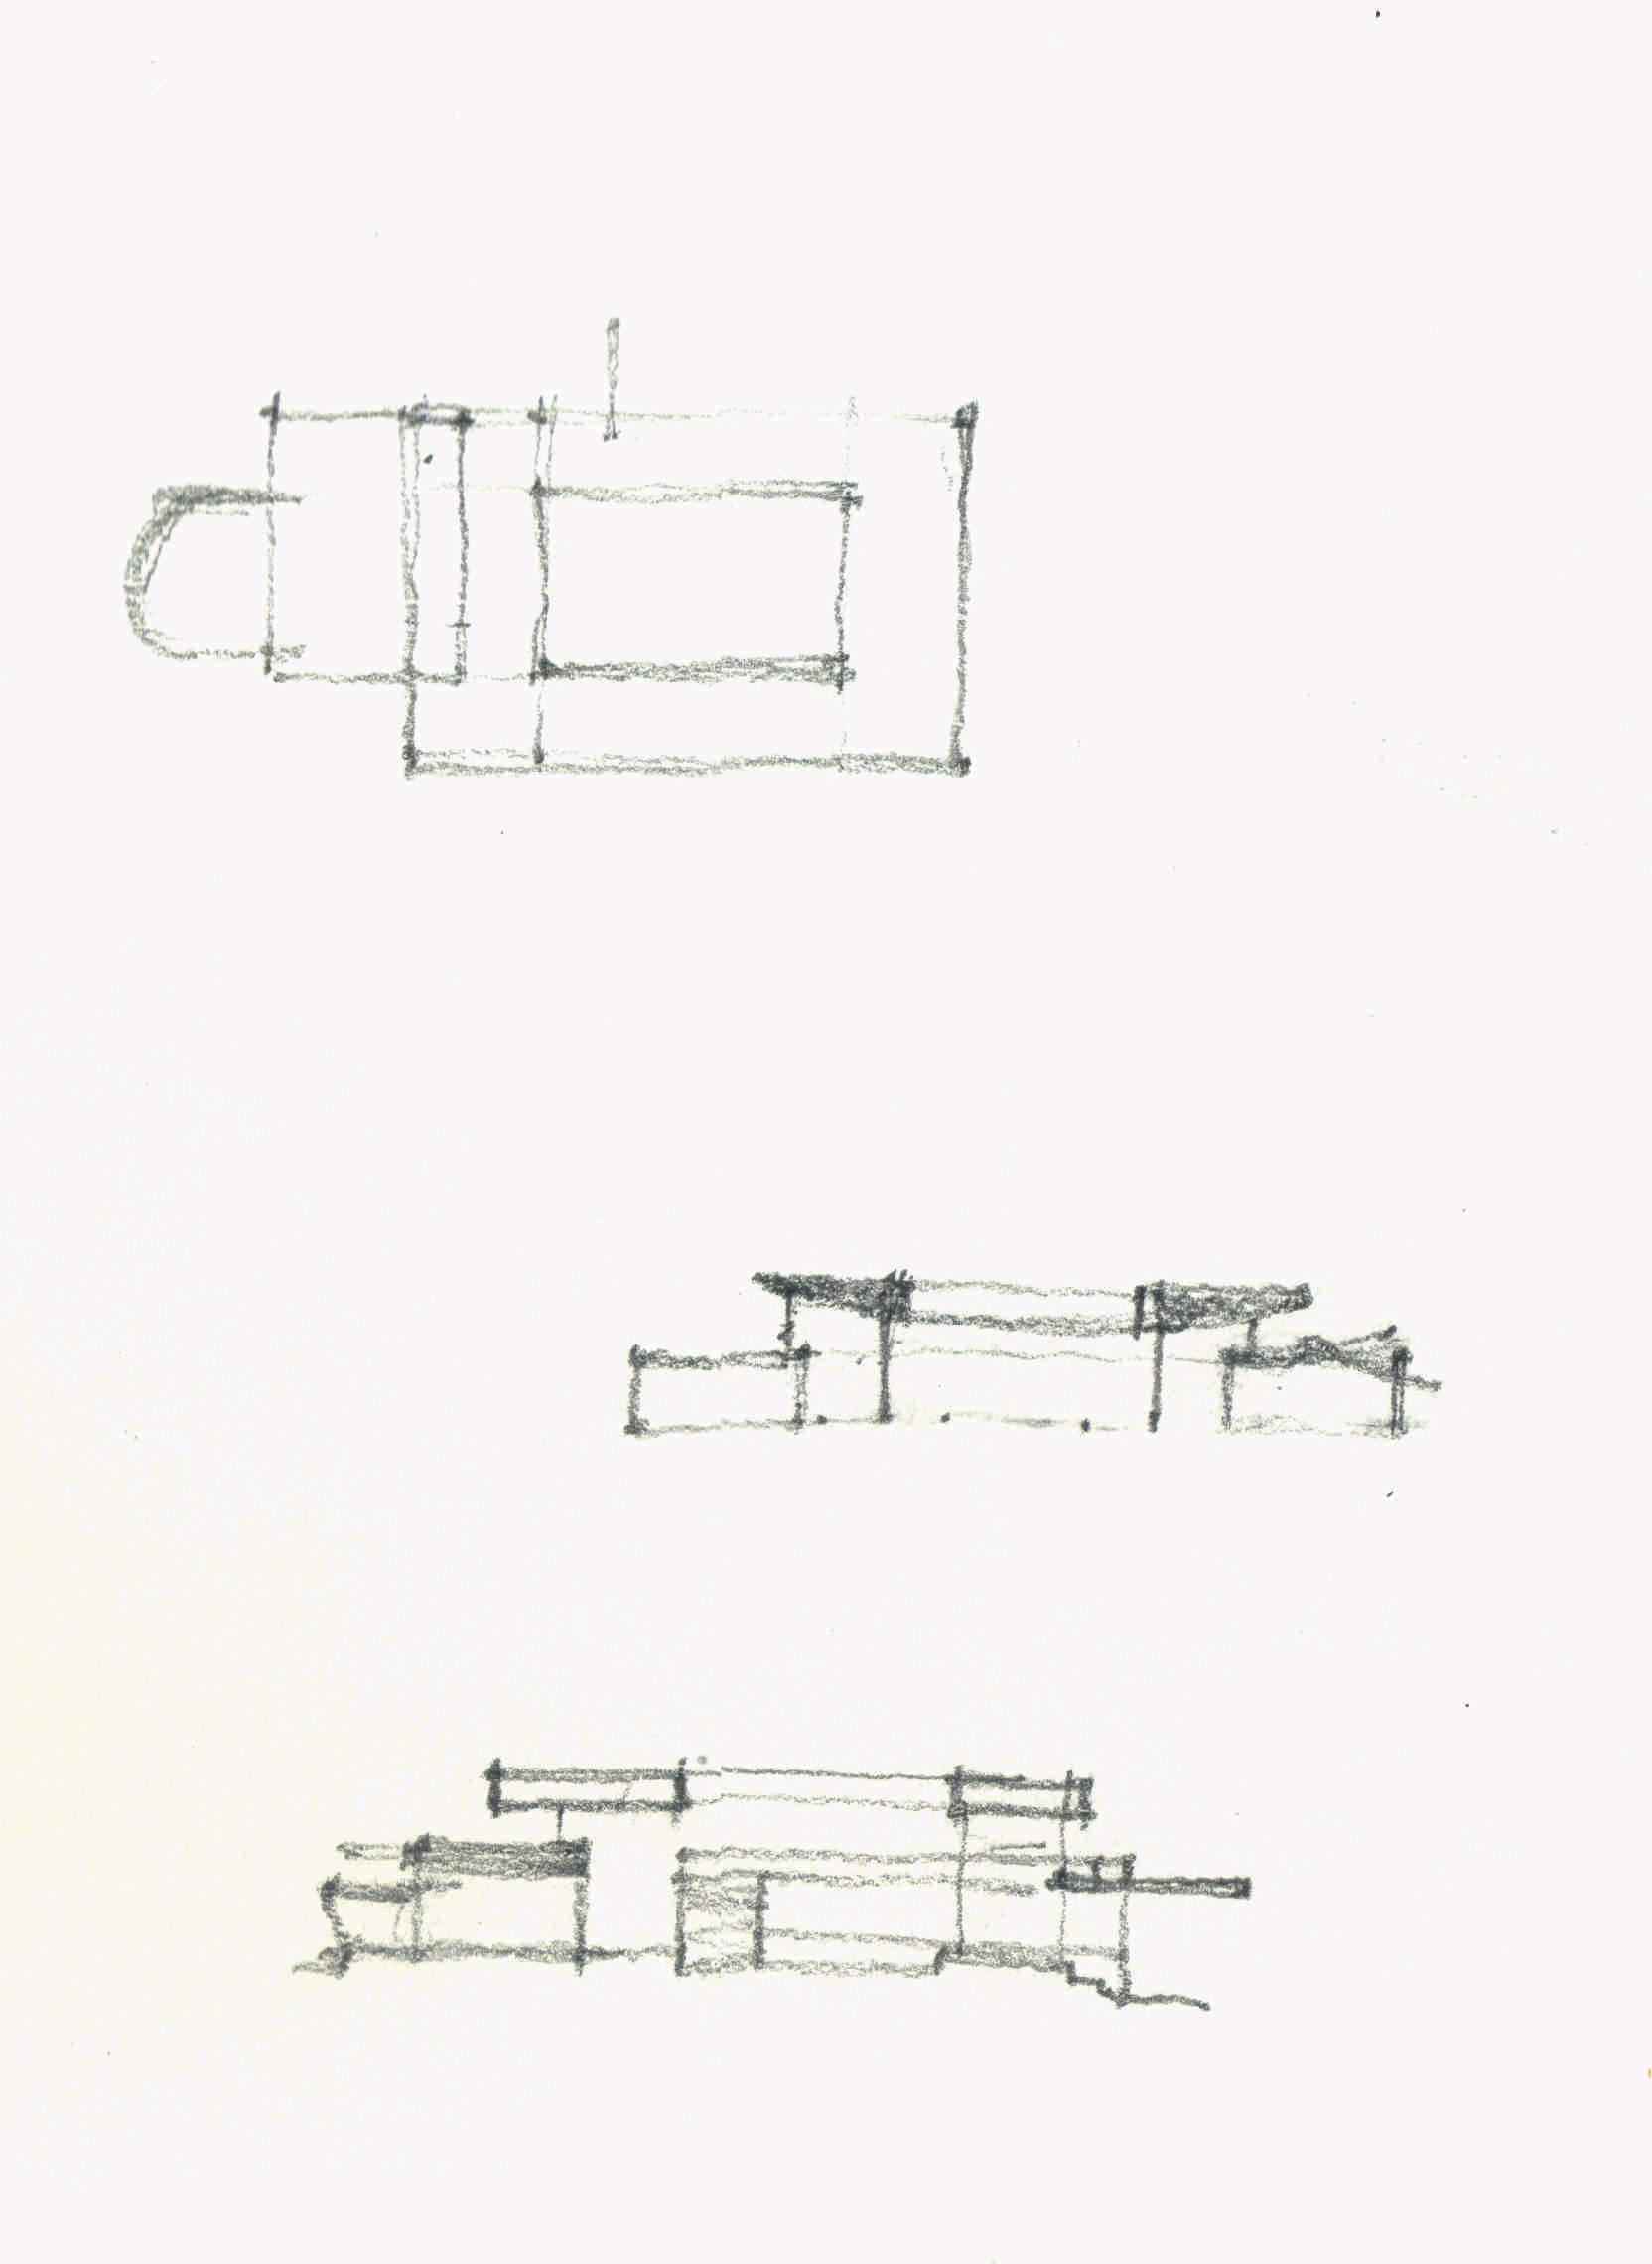 hight resolution of  architects nemish shah rowing channel officers institute diagram